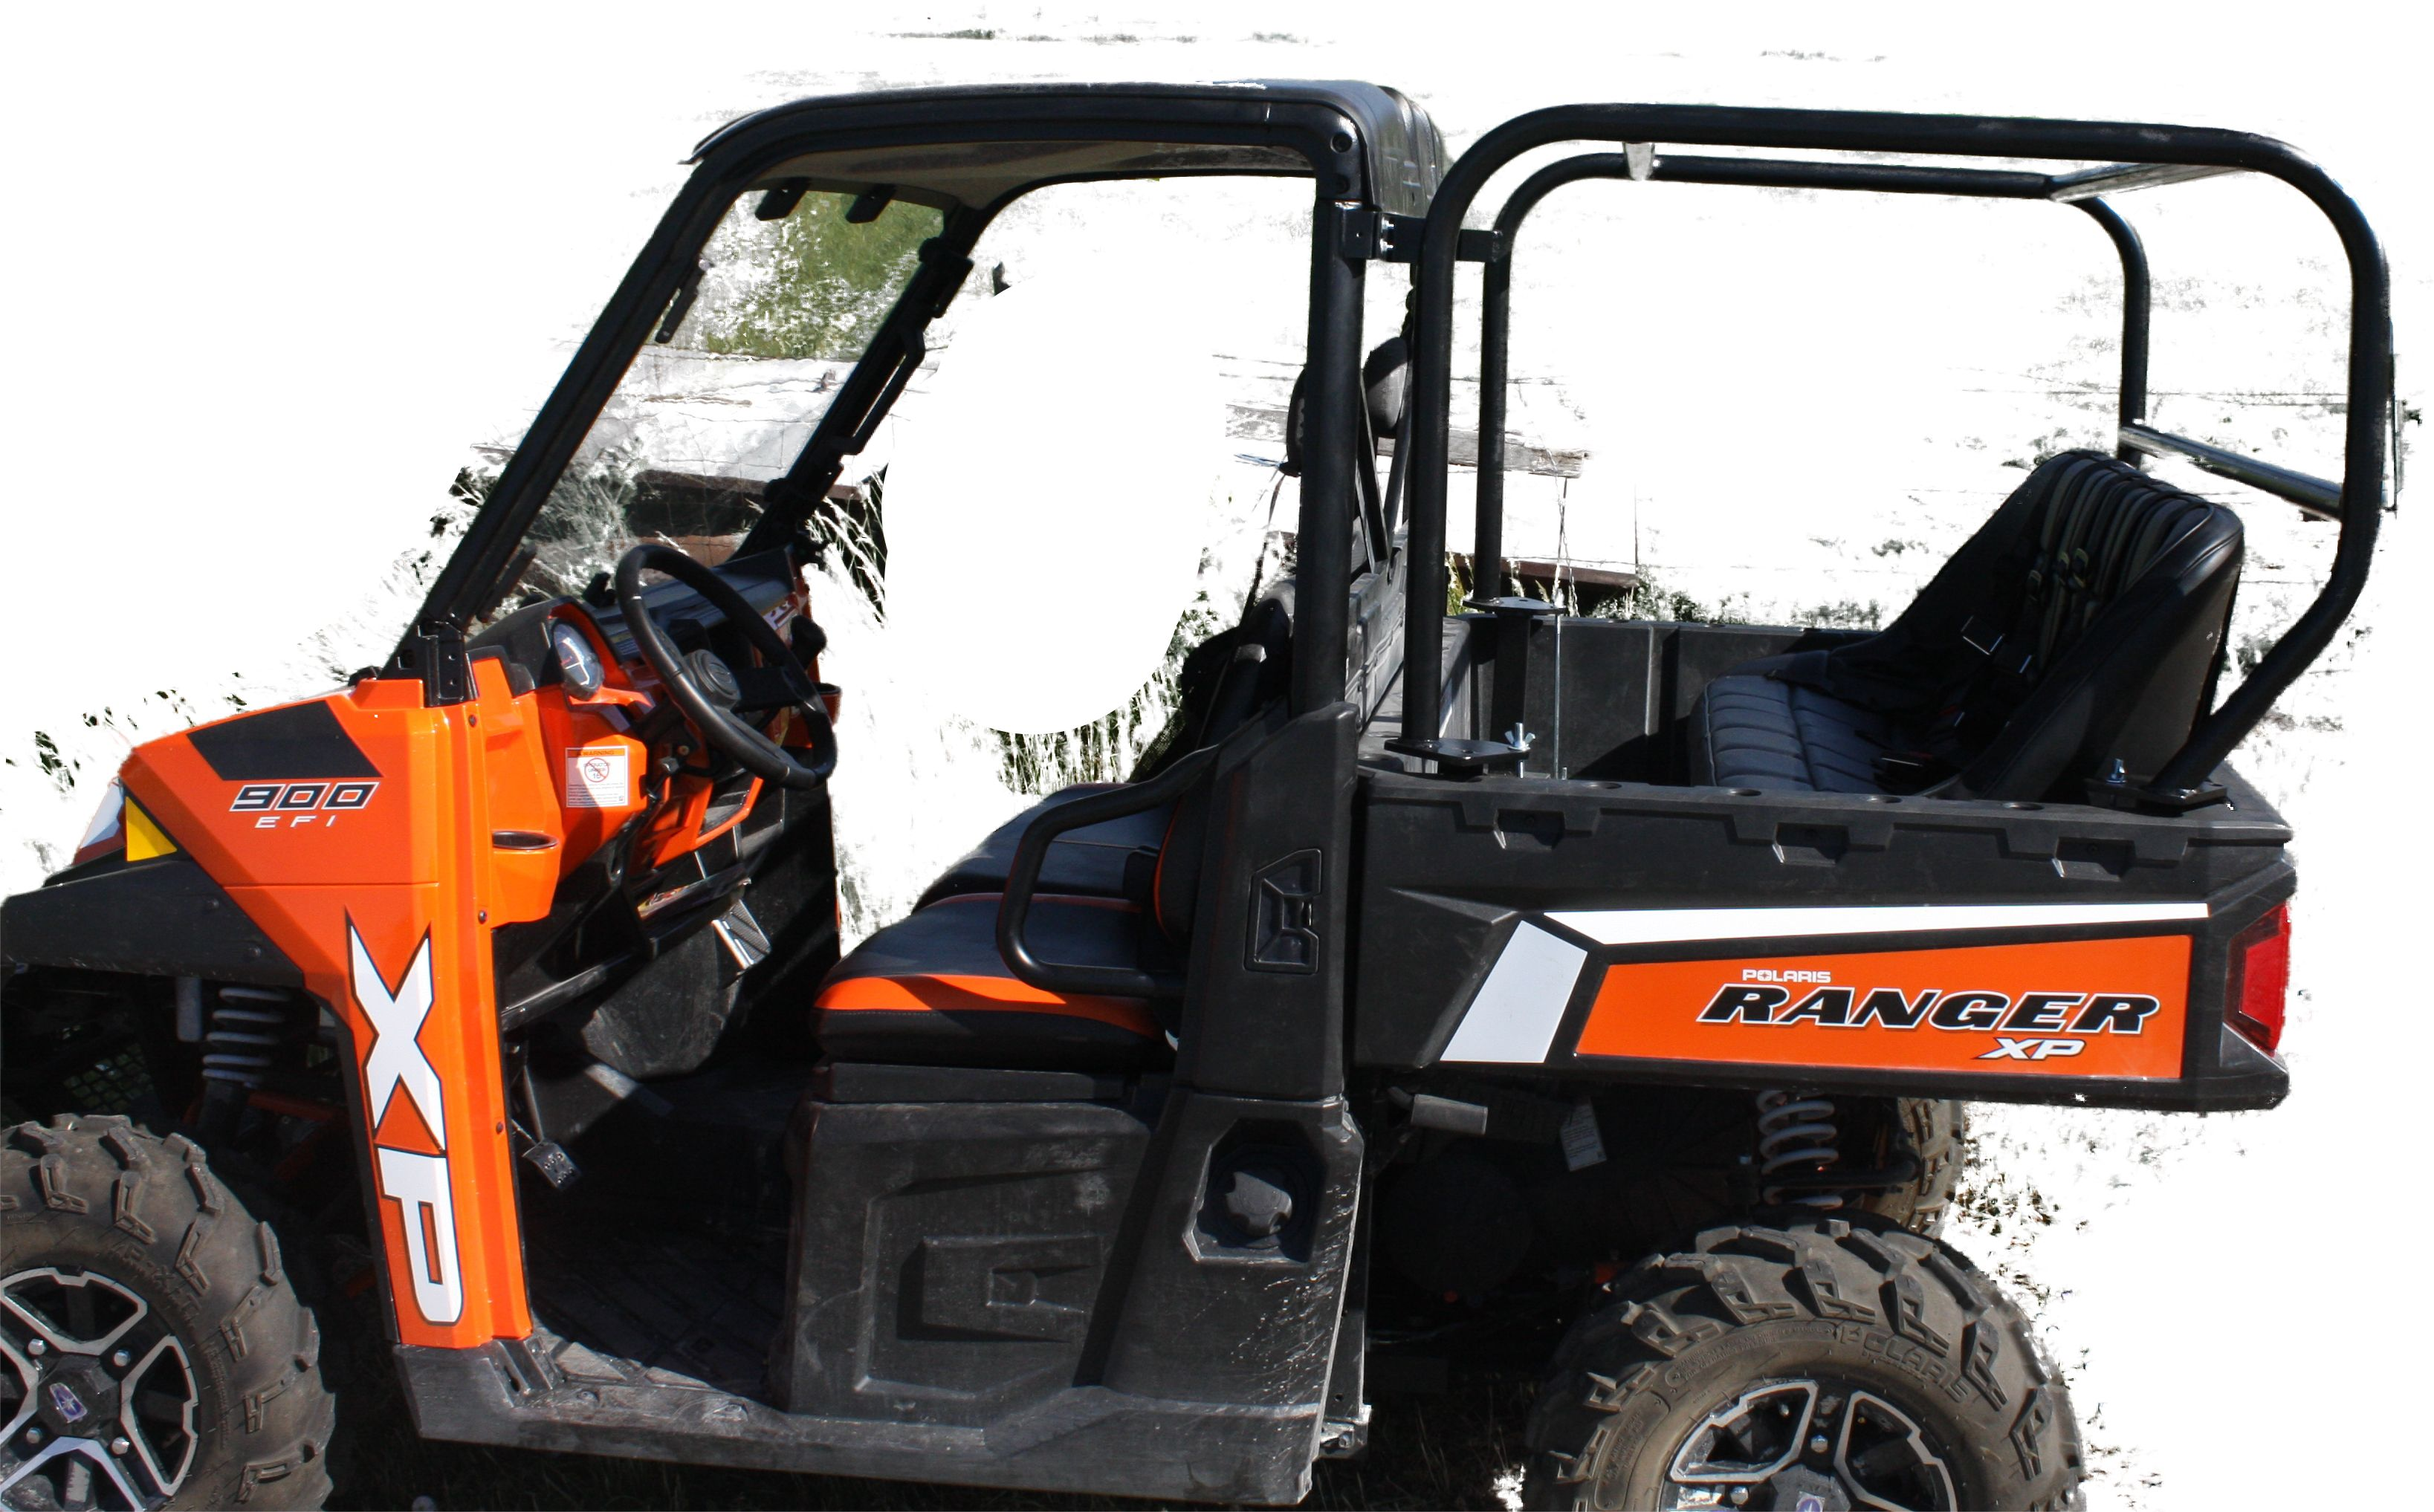 medium resolution of siorfi utv polaris ranger 900xp back seat and roll cage kit this system was designed to come in and out in minutes no drilling or welding to the bed